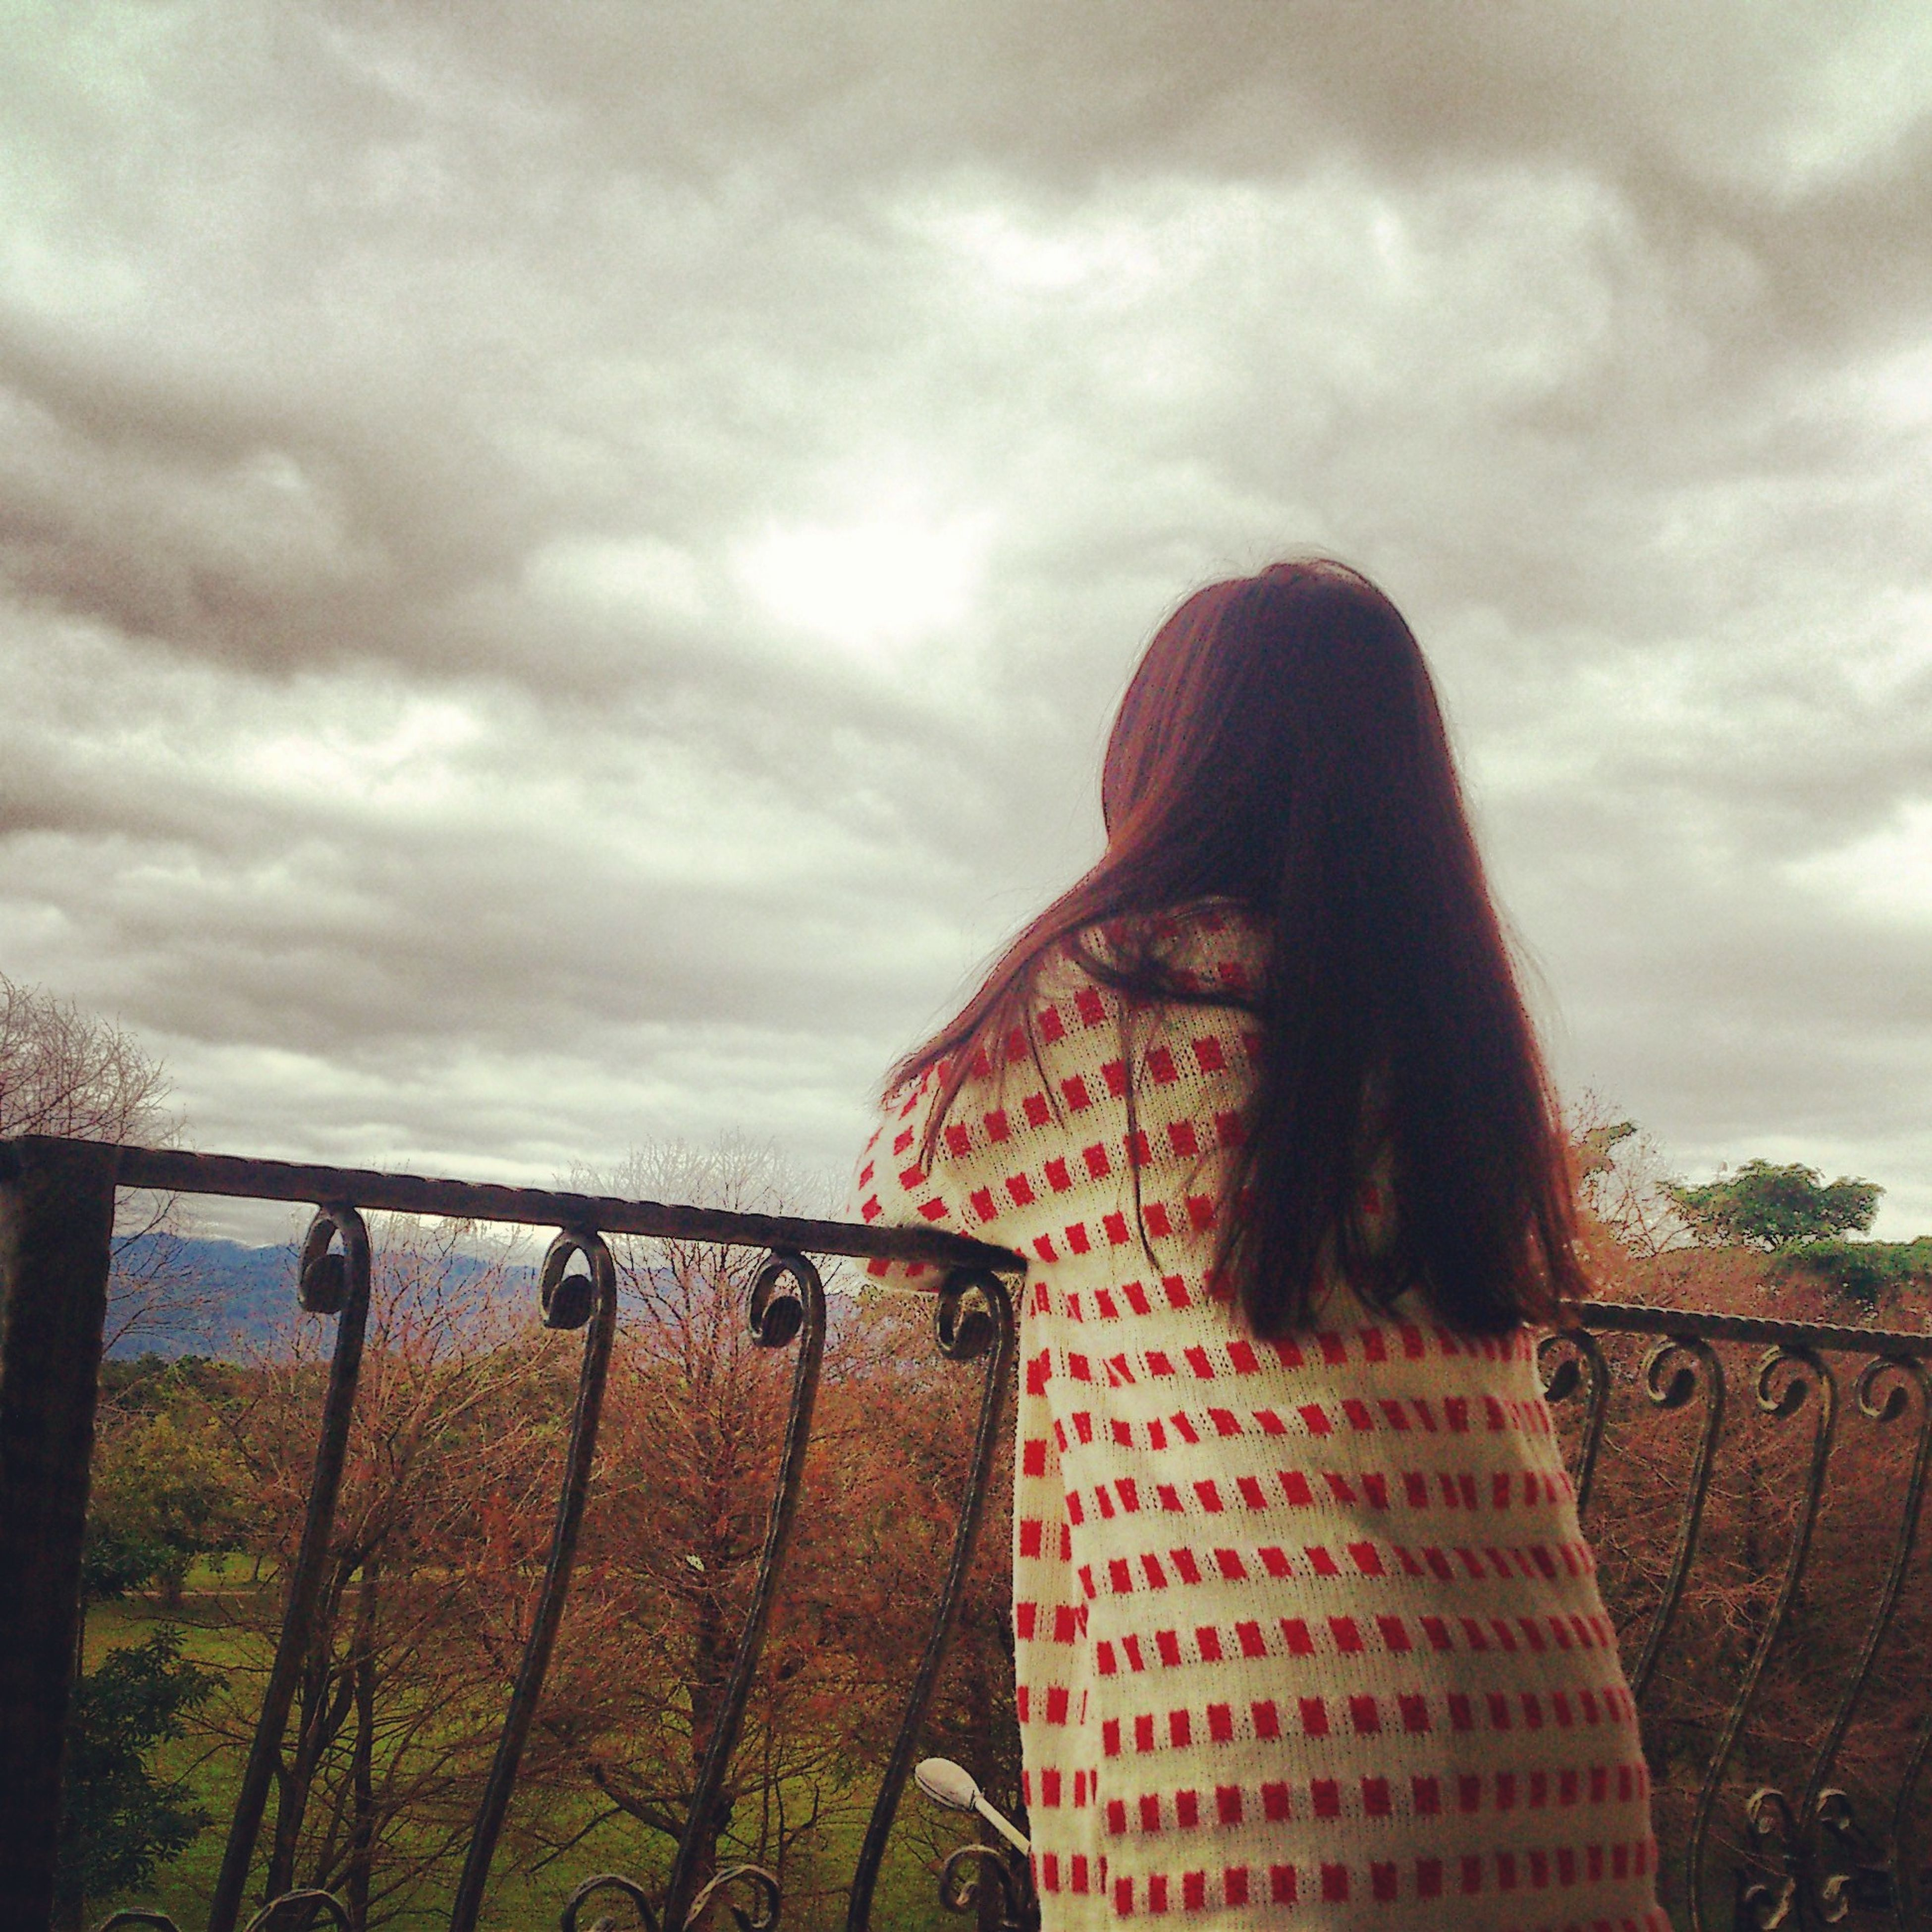 sky, cloud - sky, cloudy, cloud, leisure activity, lifestyles, rear view, nature, tranquility, overcast, railing, standing, weather, casual clothing, tranquil scene, person, scenics, day